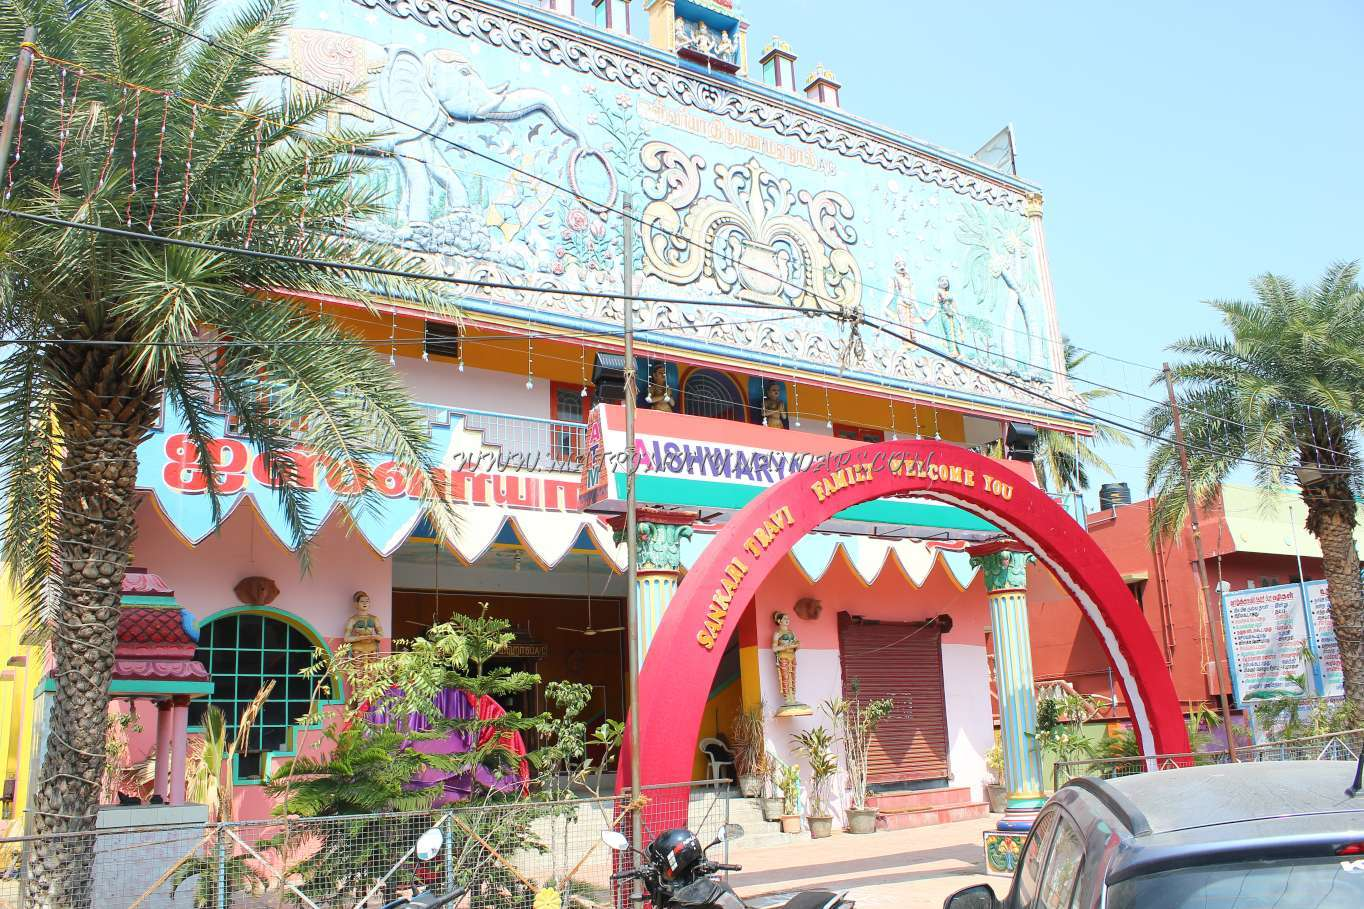 Find the availability of the Aishwarya Thirumana Mahal (A/C) in Pallikaranai, Chennai and avail special offers